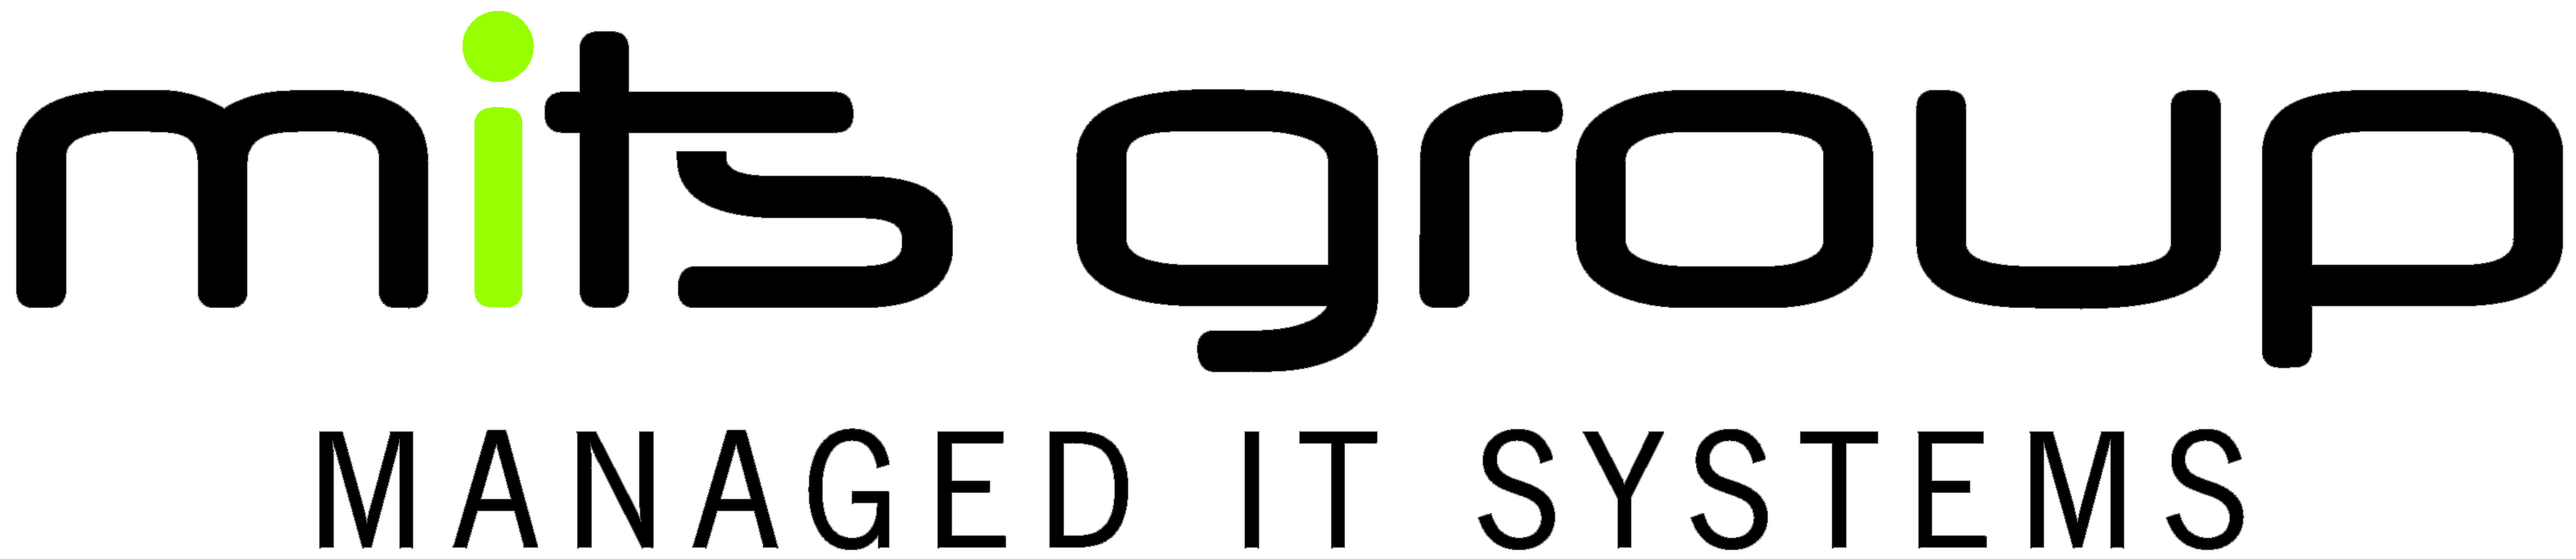 Logo mits group GmbH   -  MANAGED IT SYSTEMS